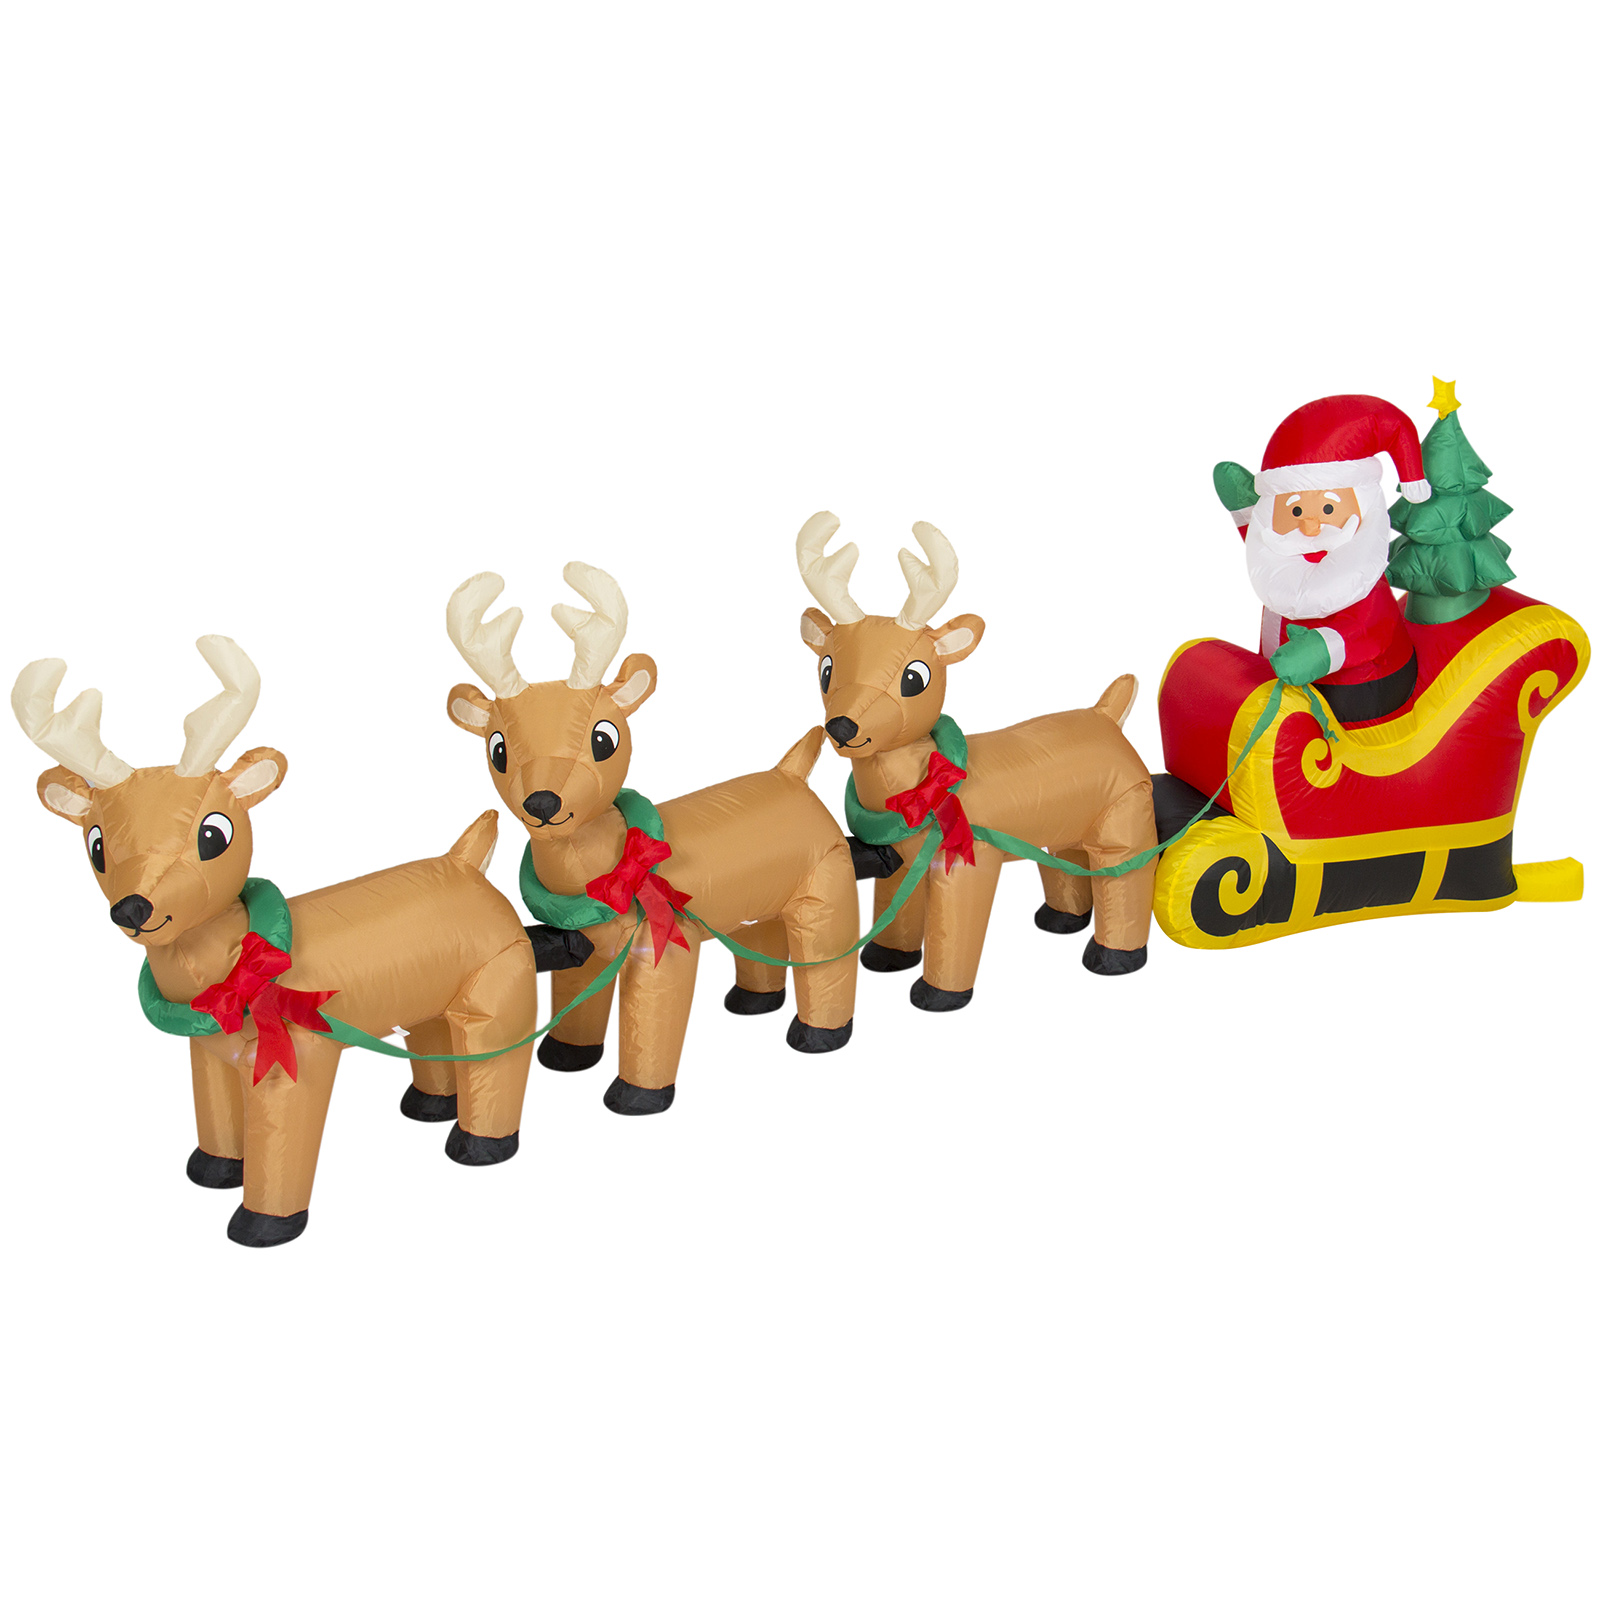 Best Choice Products 9ft Pre-Lit Inflatable Christmas Santa Claus Sleigh and Reindeer Decor w/ Lights, Stakes, Electric Fan Blower - Multicolor